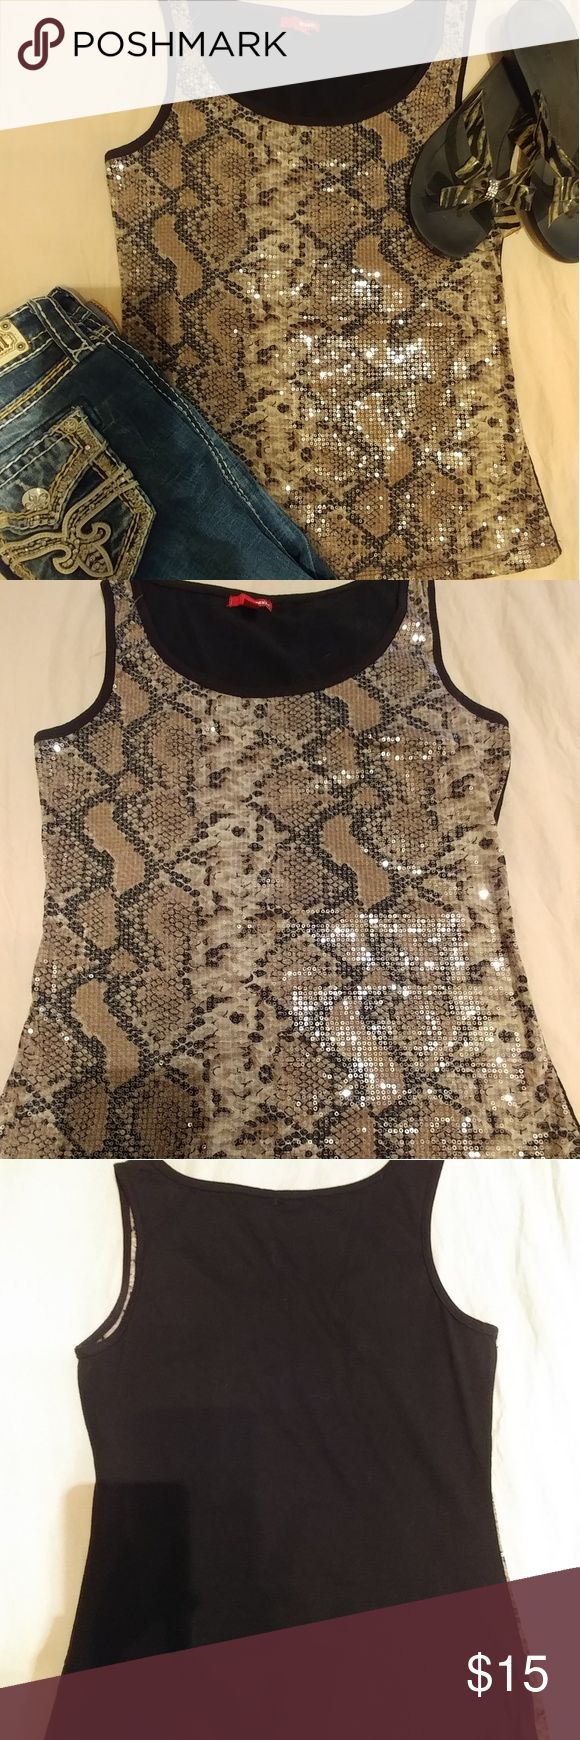 Sequin tank top This unique tank top resembles snake skin with a twist..it's done in sequins! I've worn this both dressed up and down and looks great either way! Tops Tank Tops